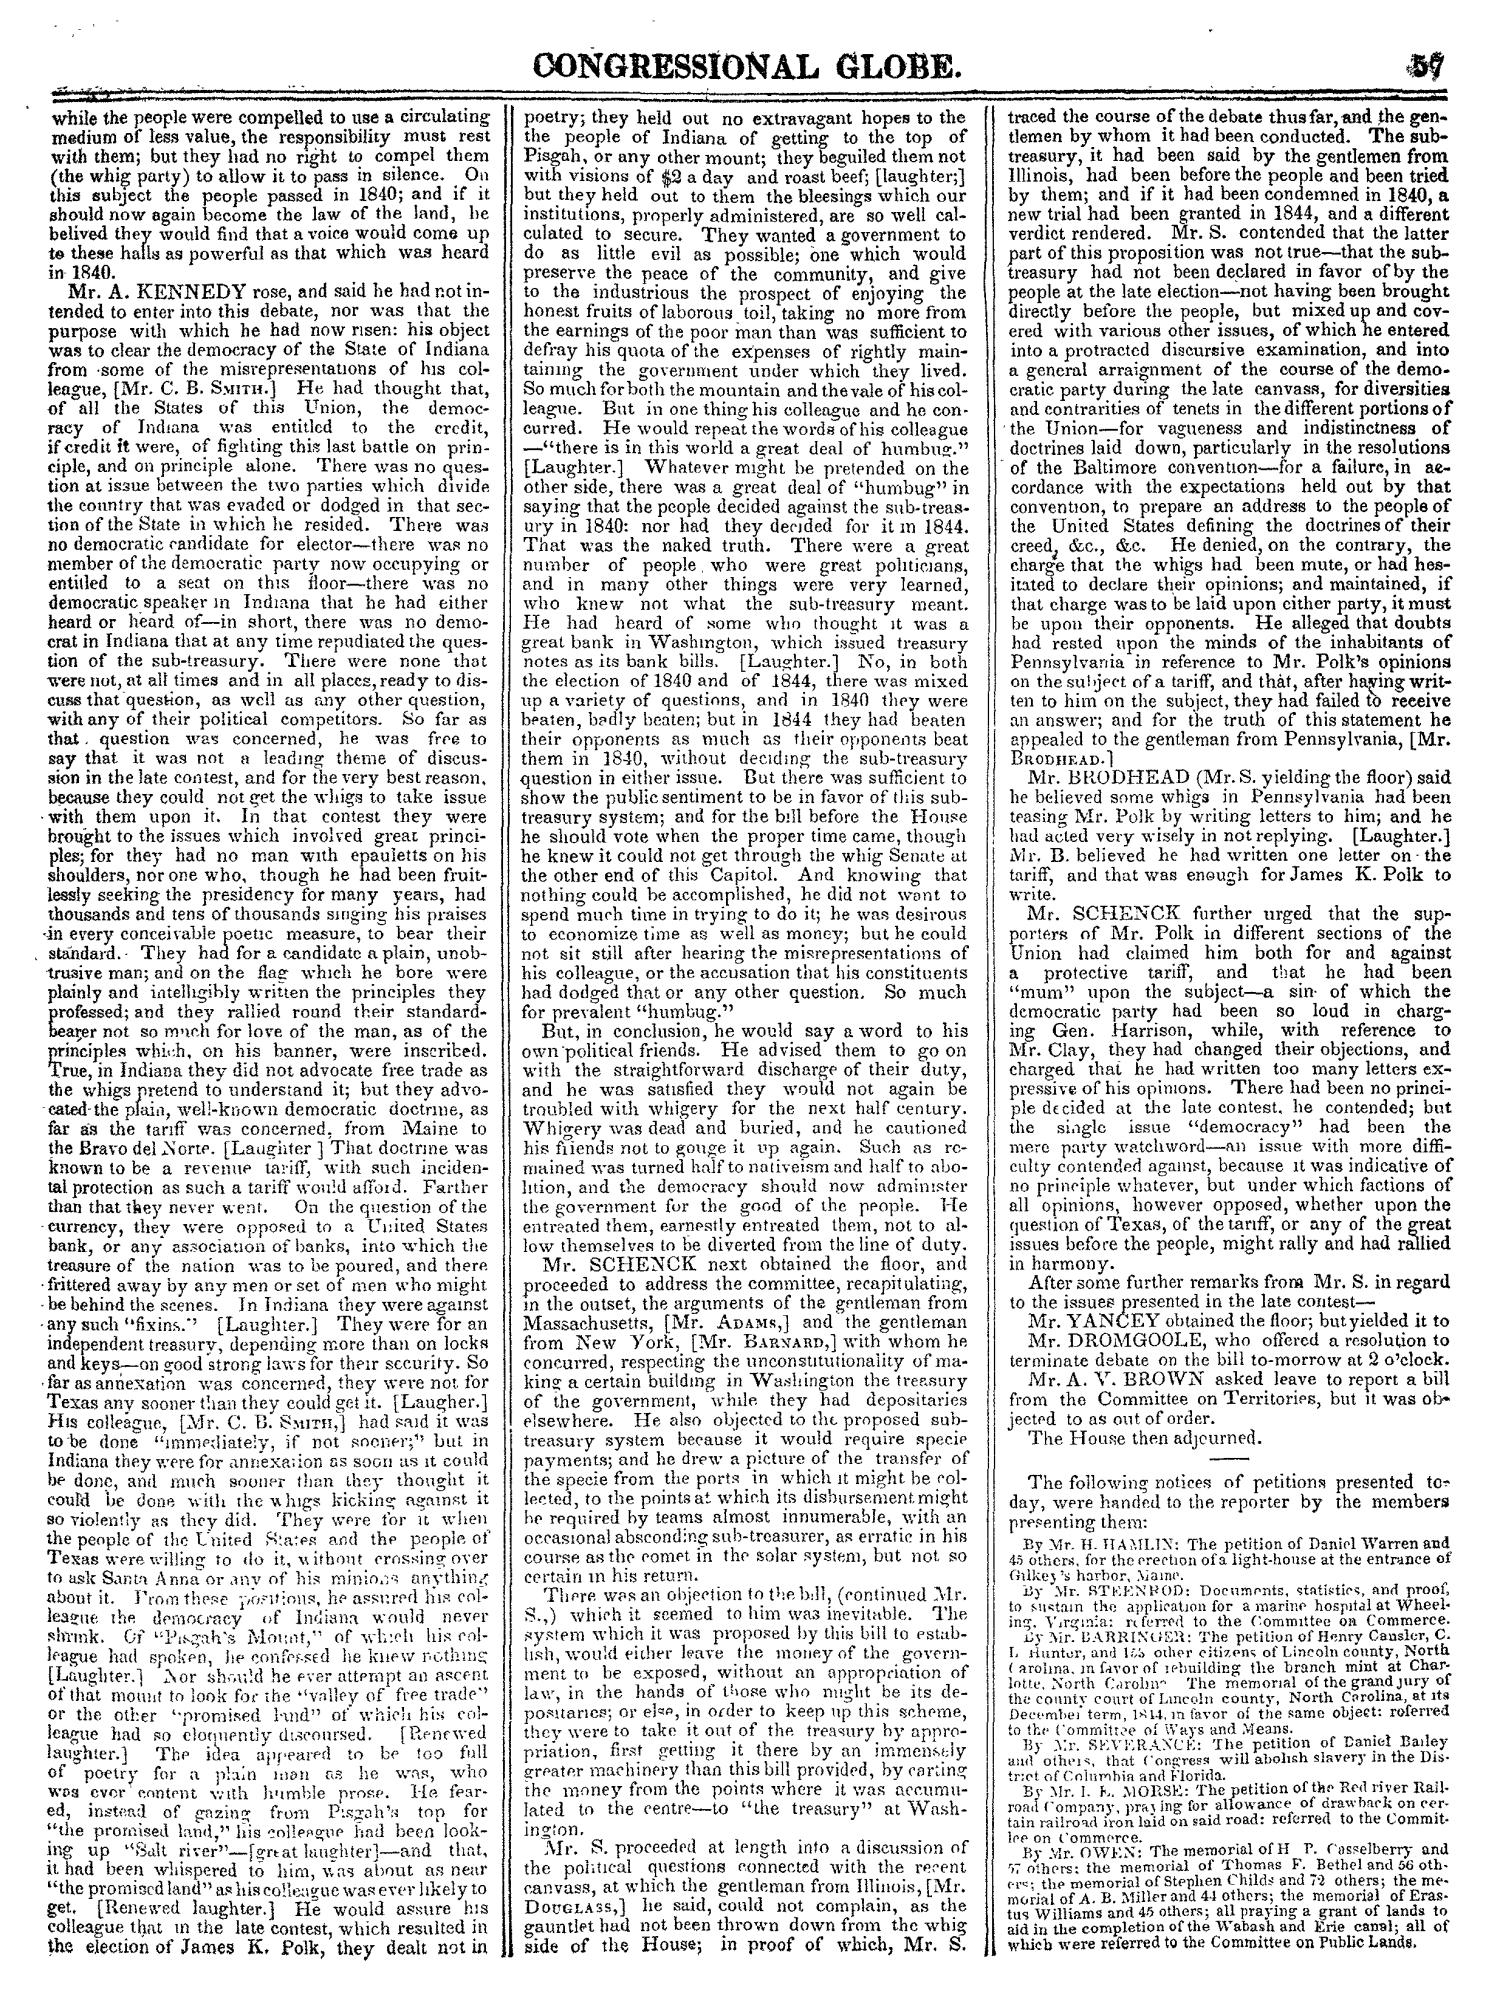 The Congressional Globe, Volume 14: Twenty-Eighth Congress, Second Session                                                                                                      57